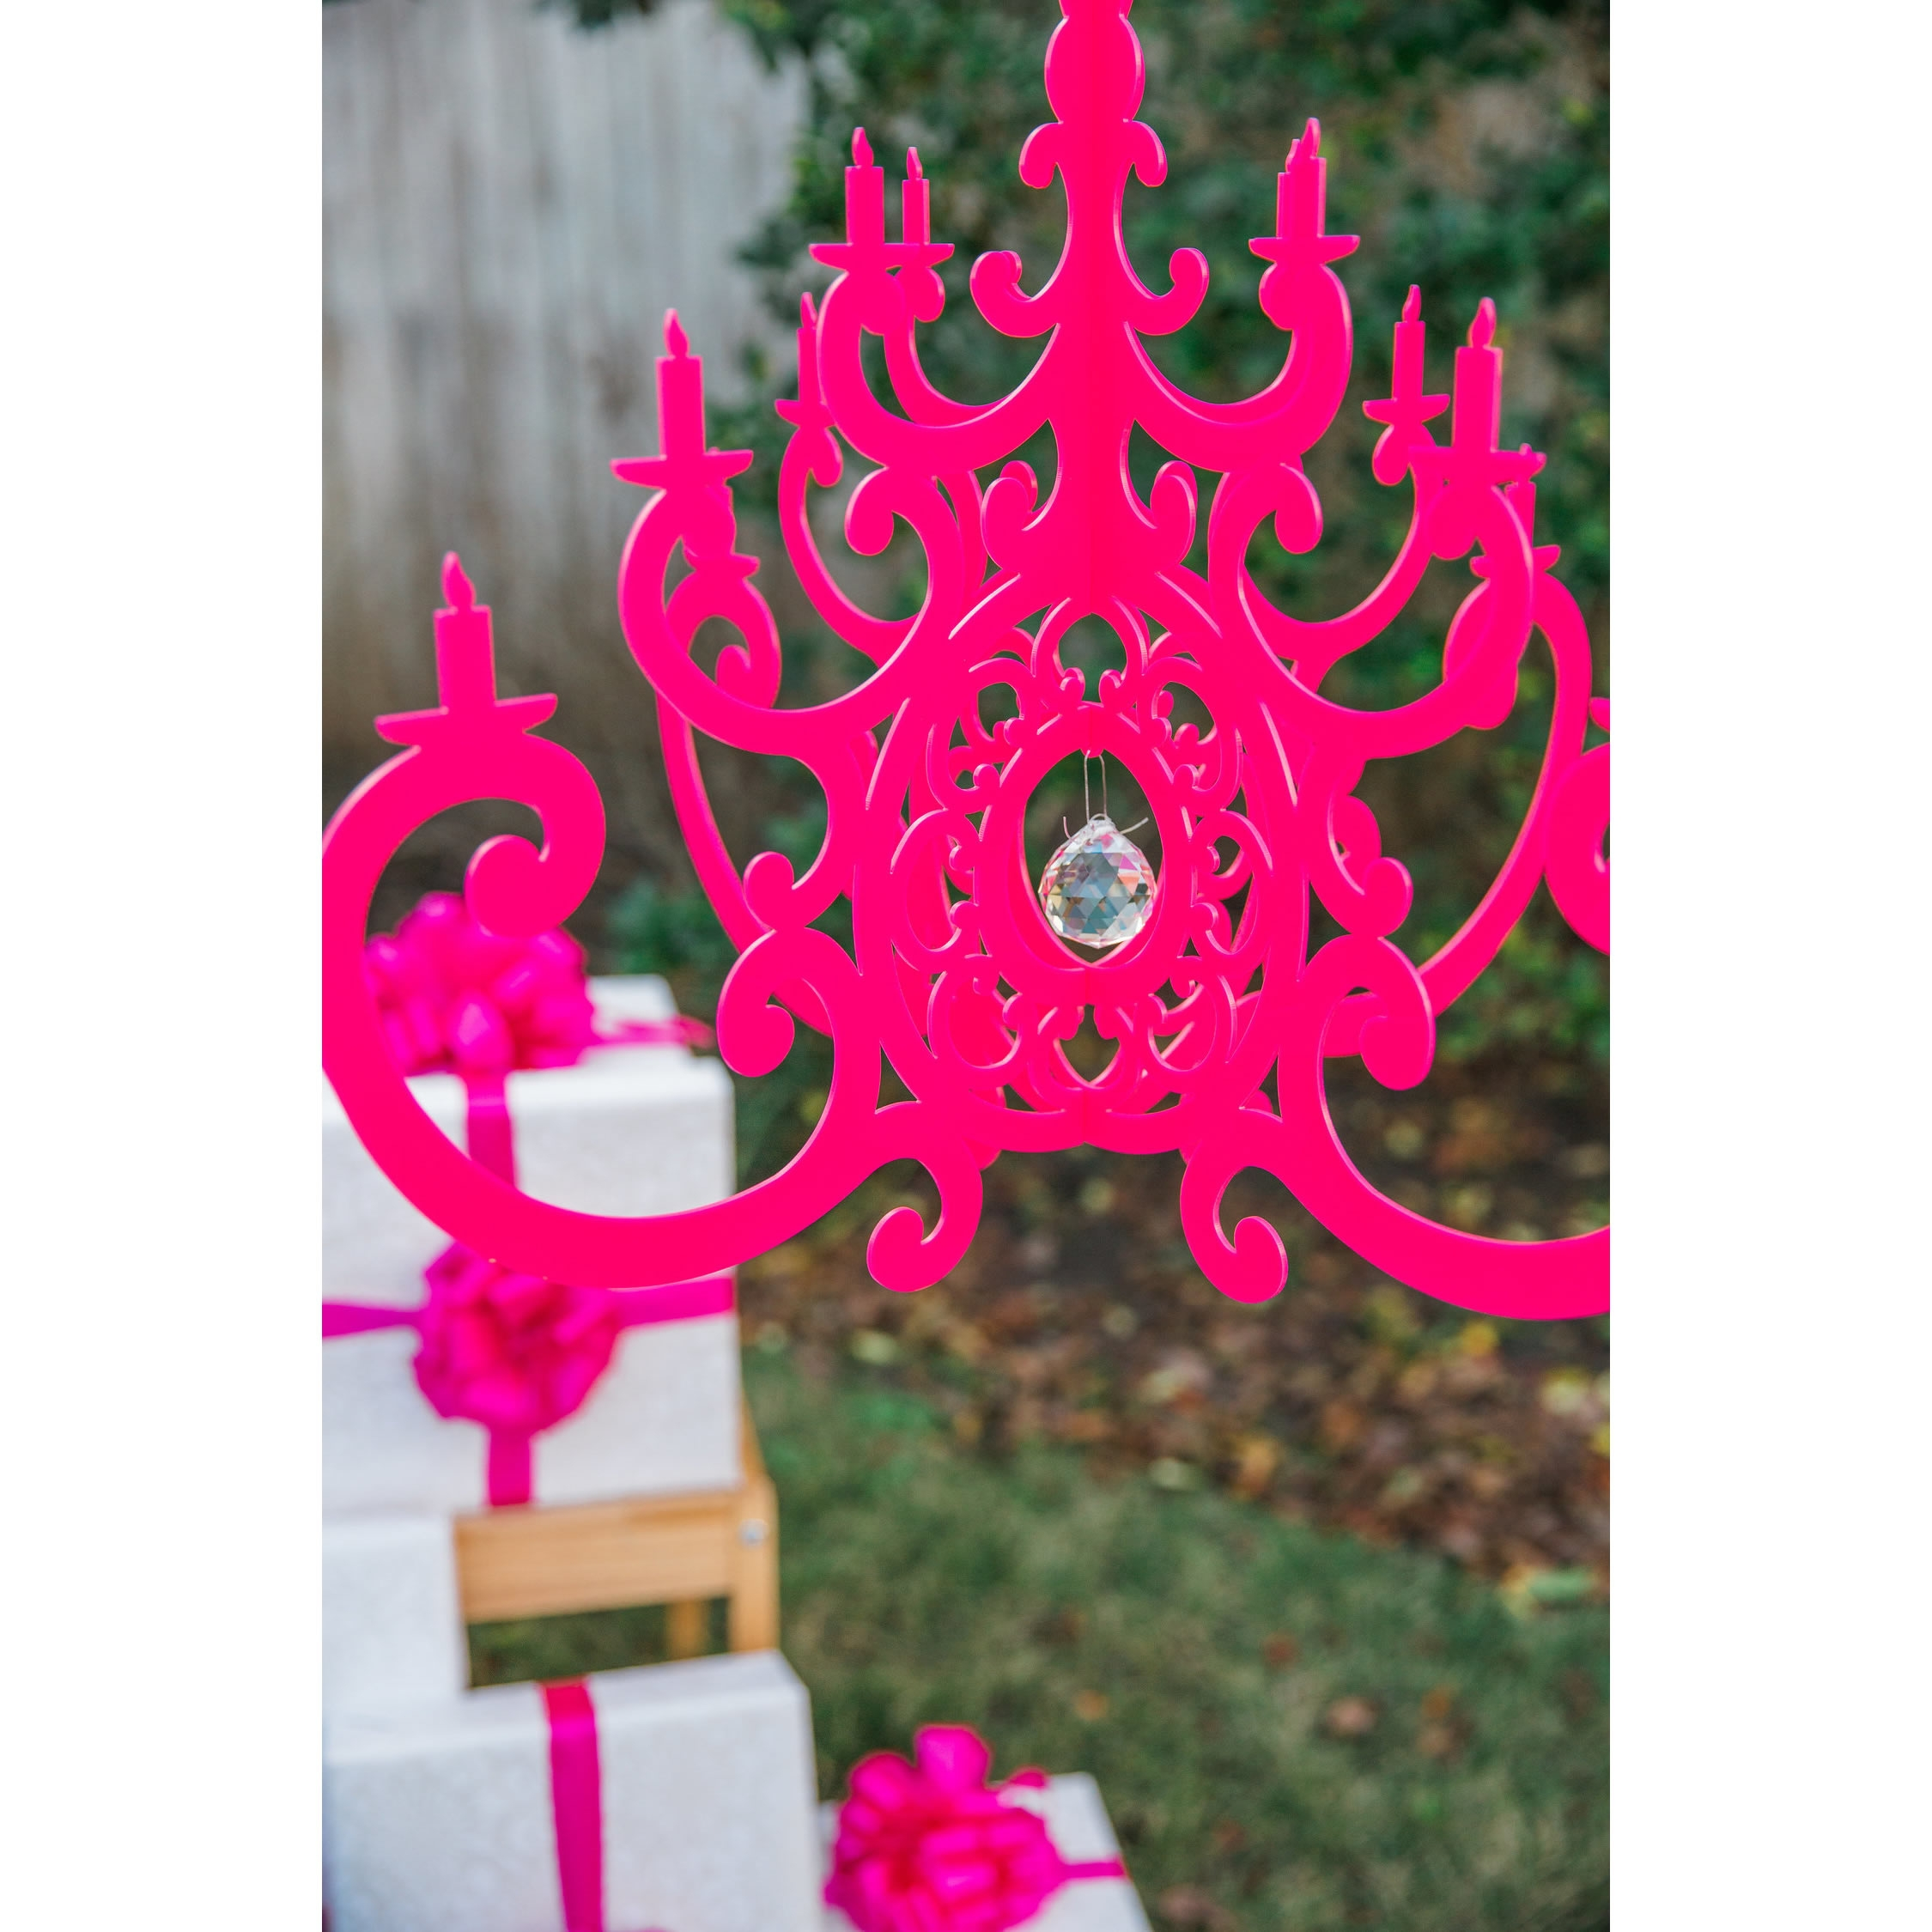 Fancy Hot Pink Chandelier Mobile With Regard To Turquoise And Pink Chandeliers (View 12 of 25)